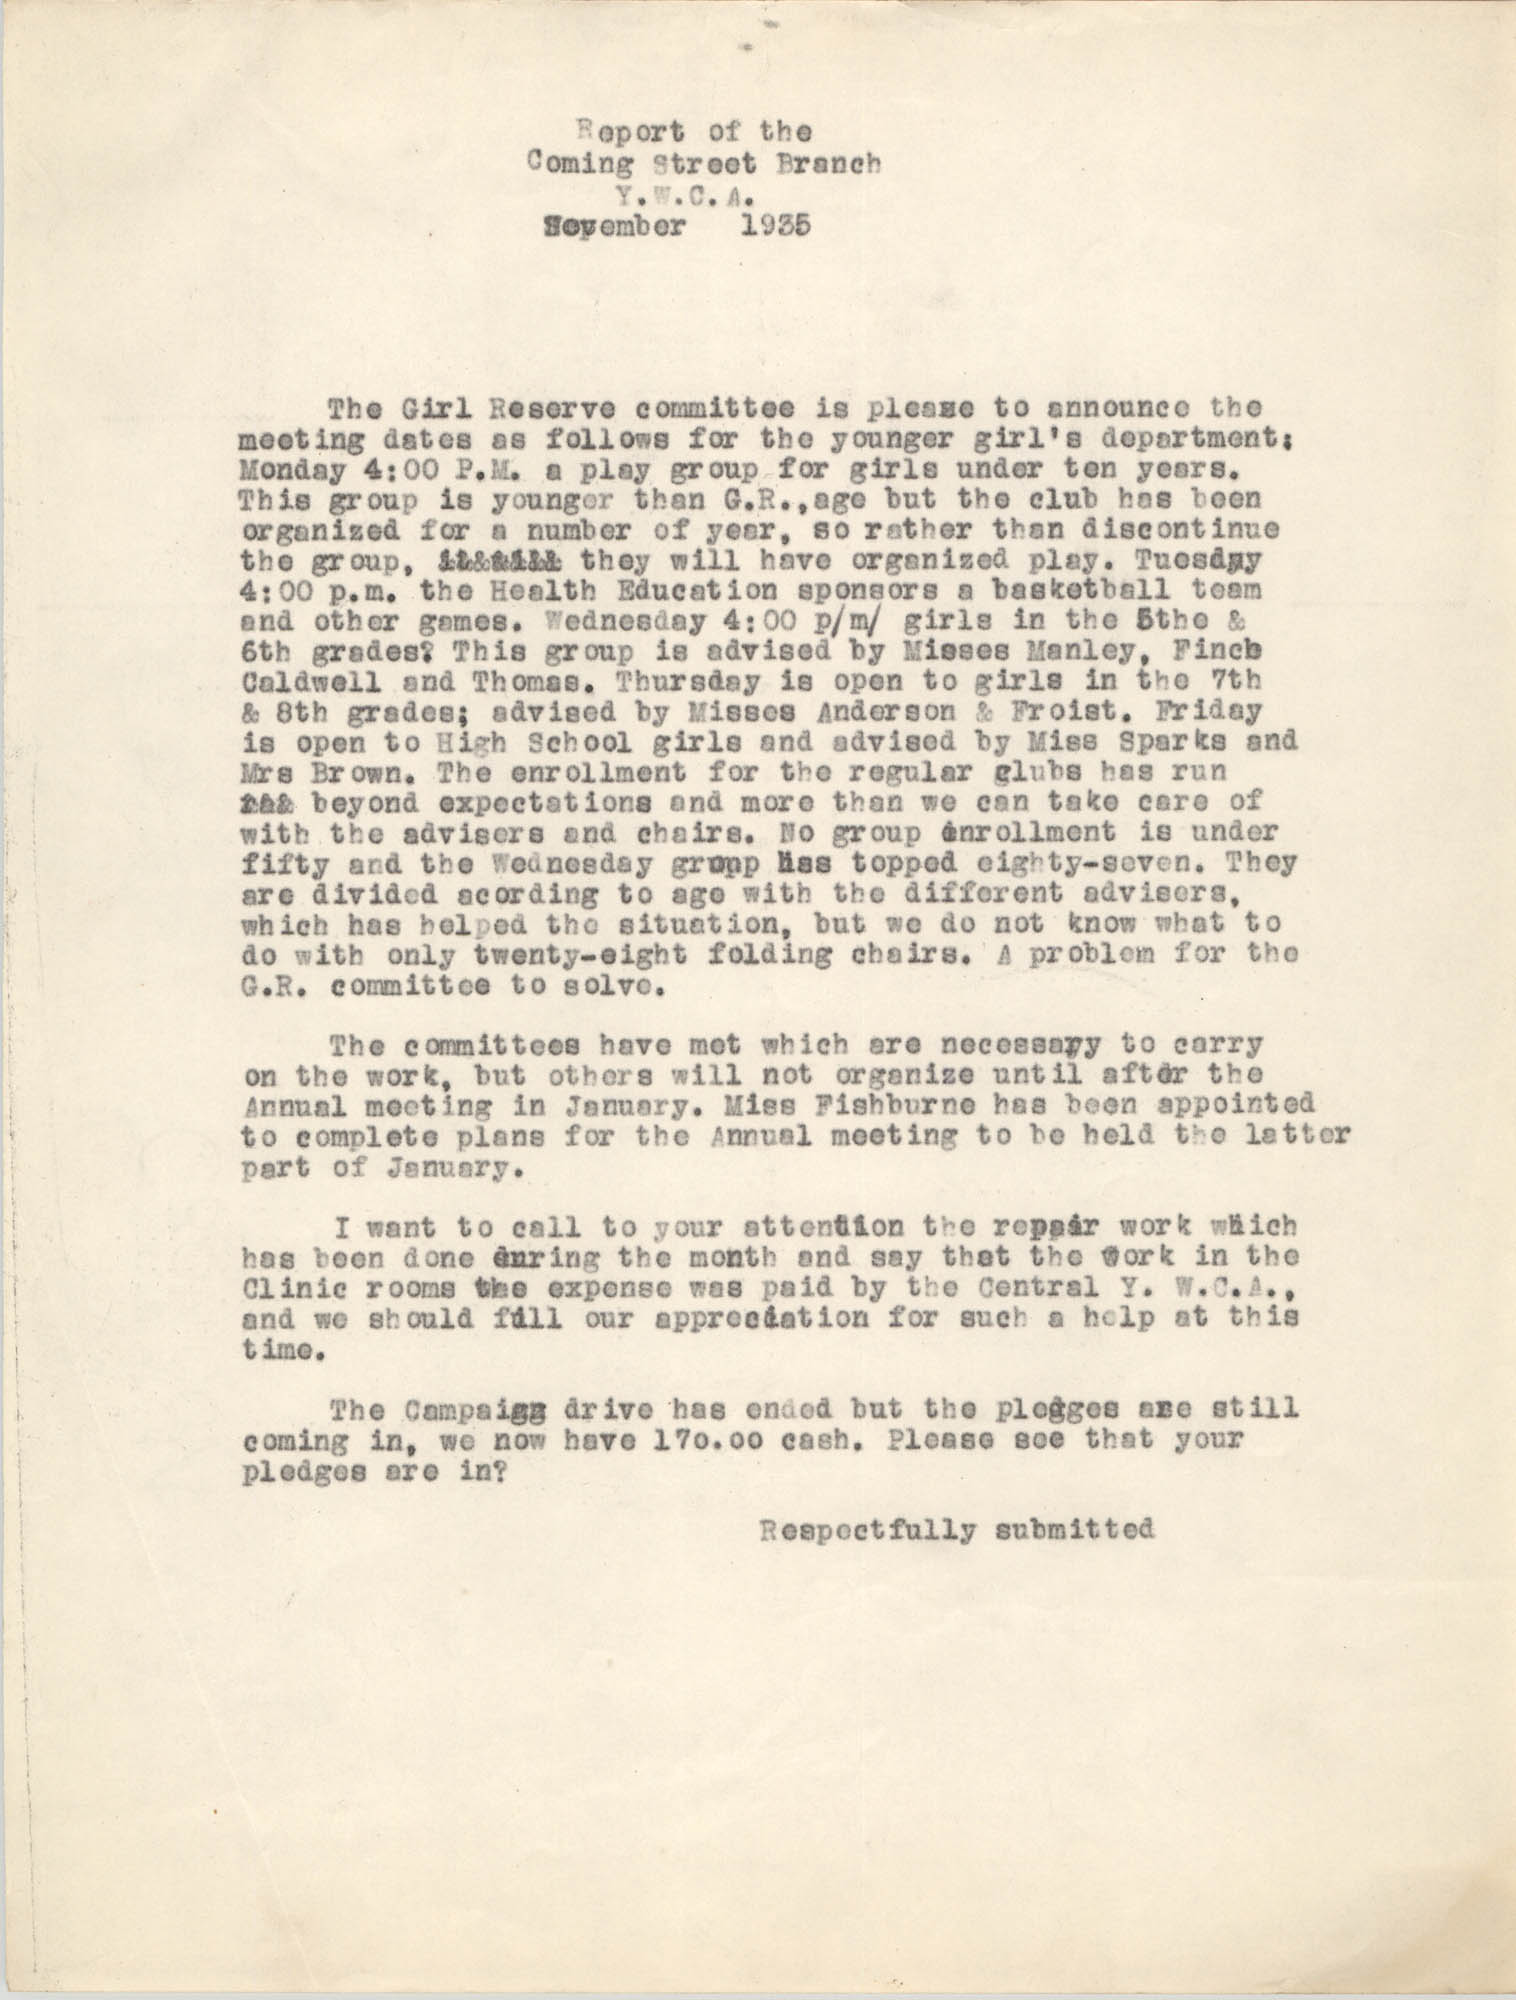 Monthly Report for the Coming Street Y.W.C.A., September 1935